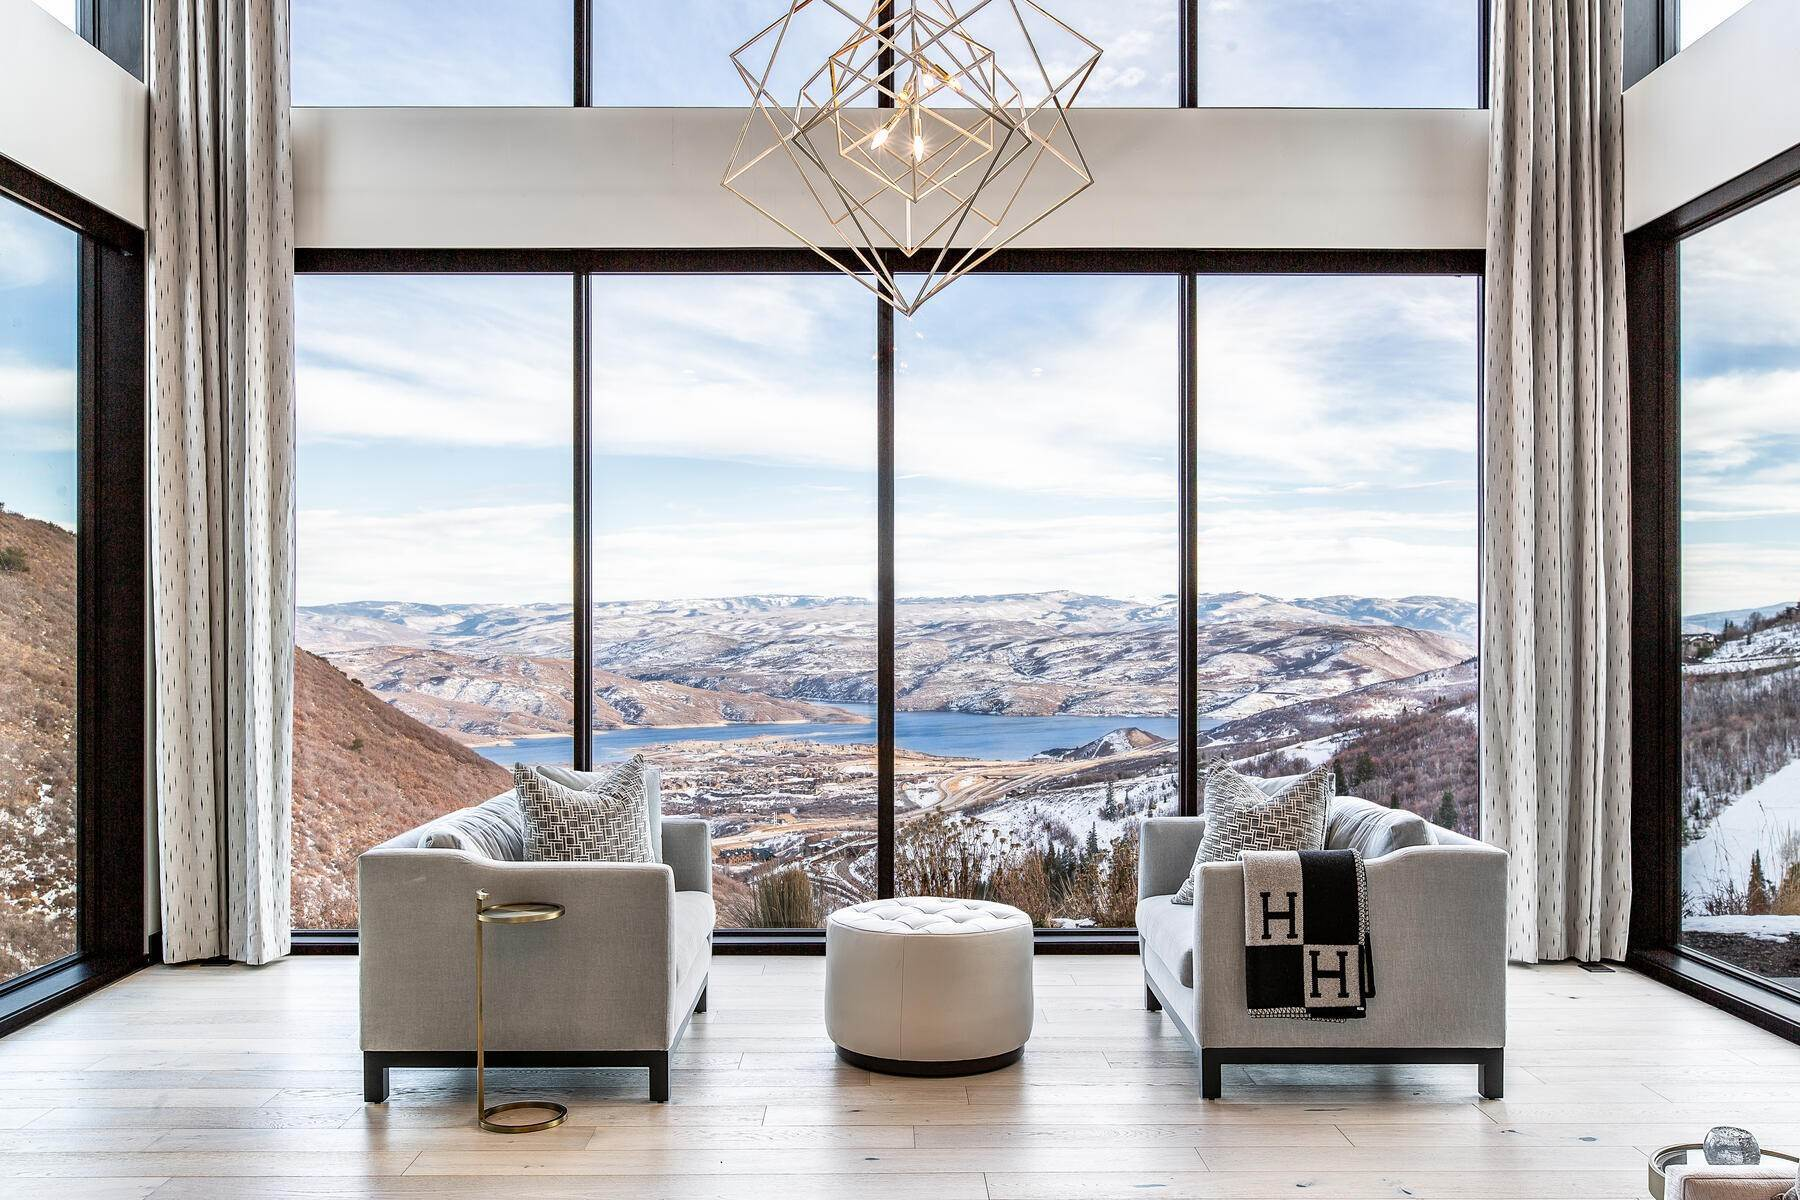 Single Family Homes for Sale at Stunning Contemporary Deer Valley Home with Amazing Lake and Resort Views 11325 N Snowtop Road Park City, Utah 84060 United States